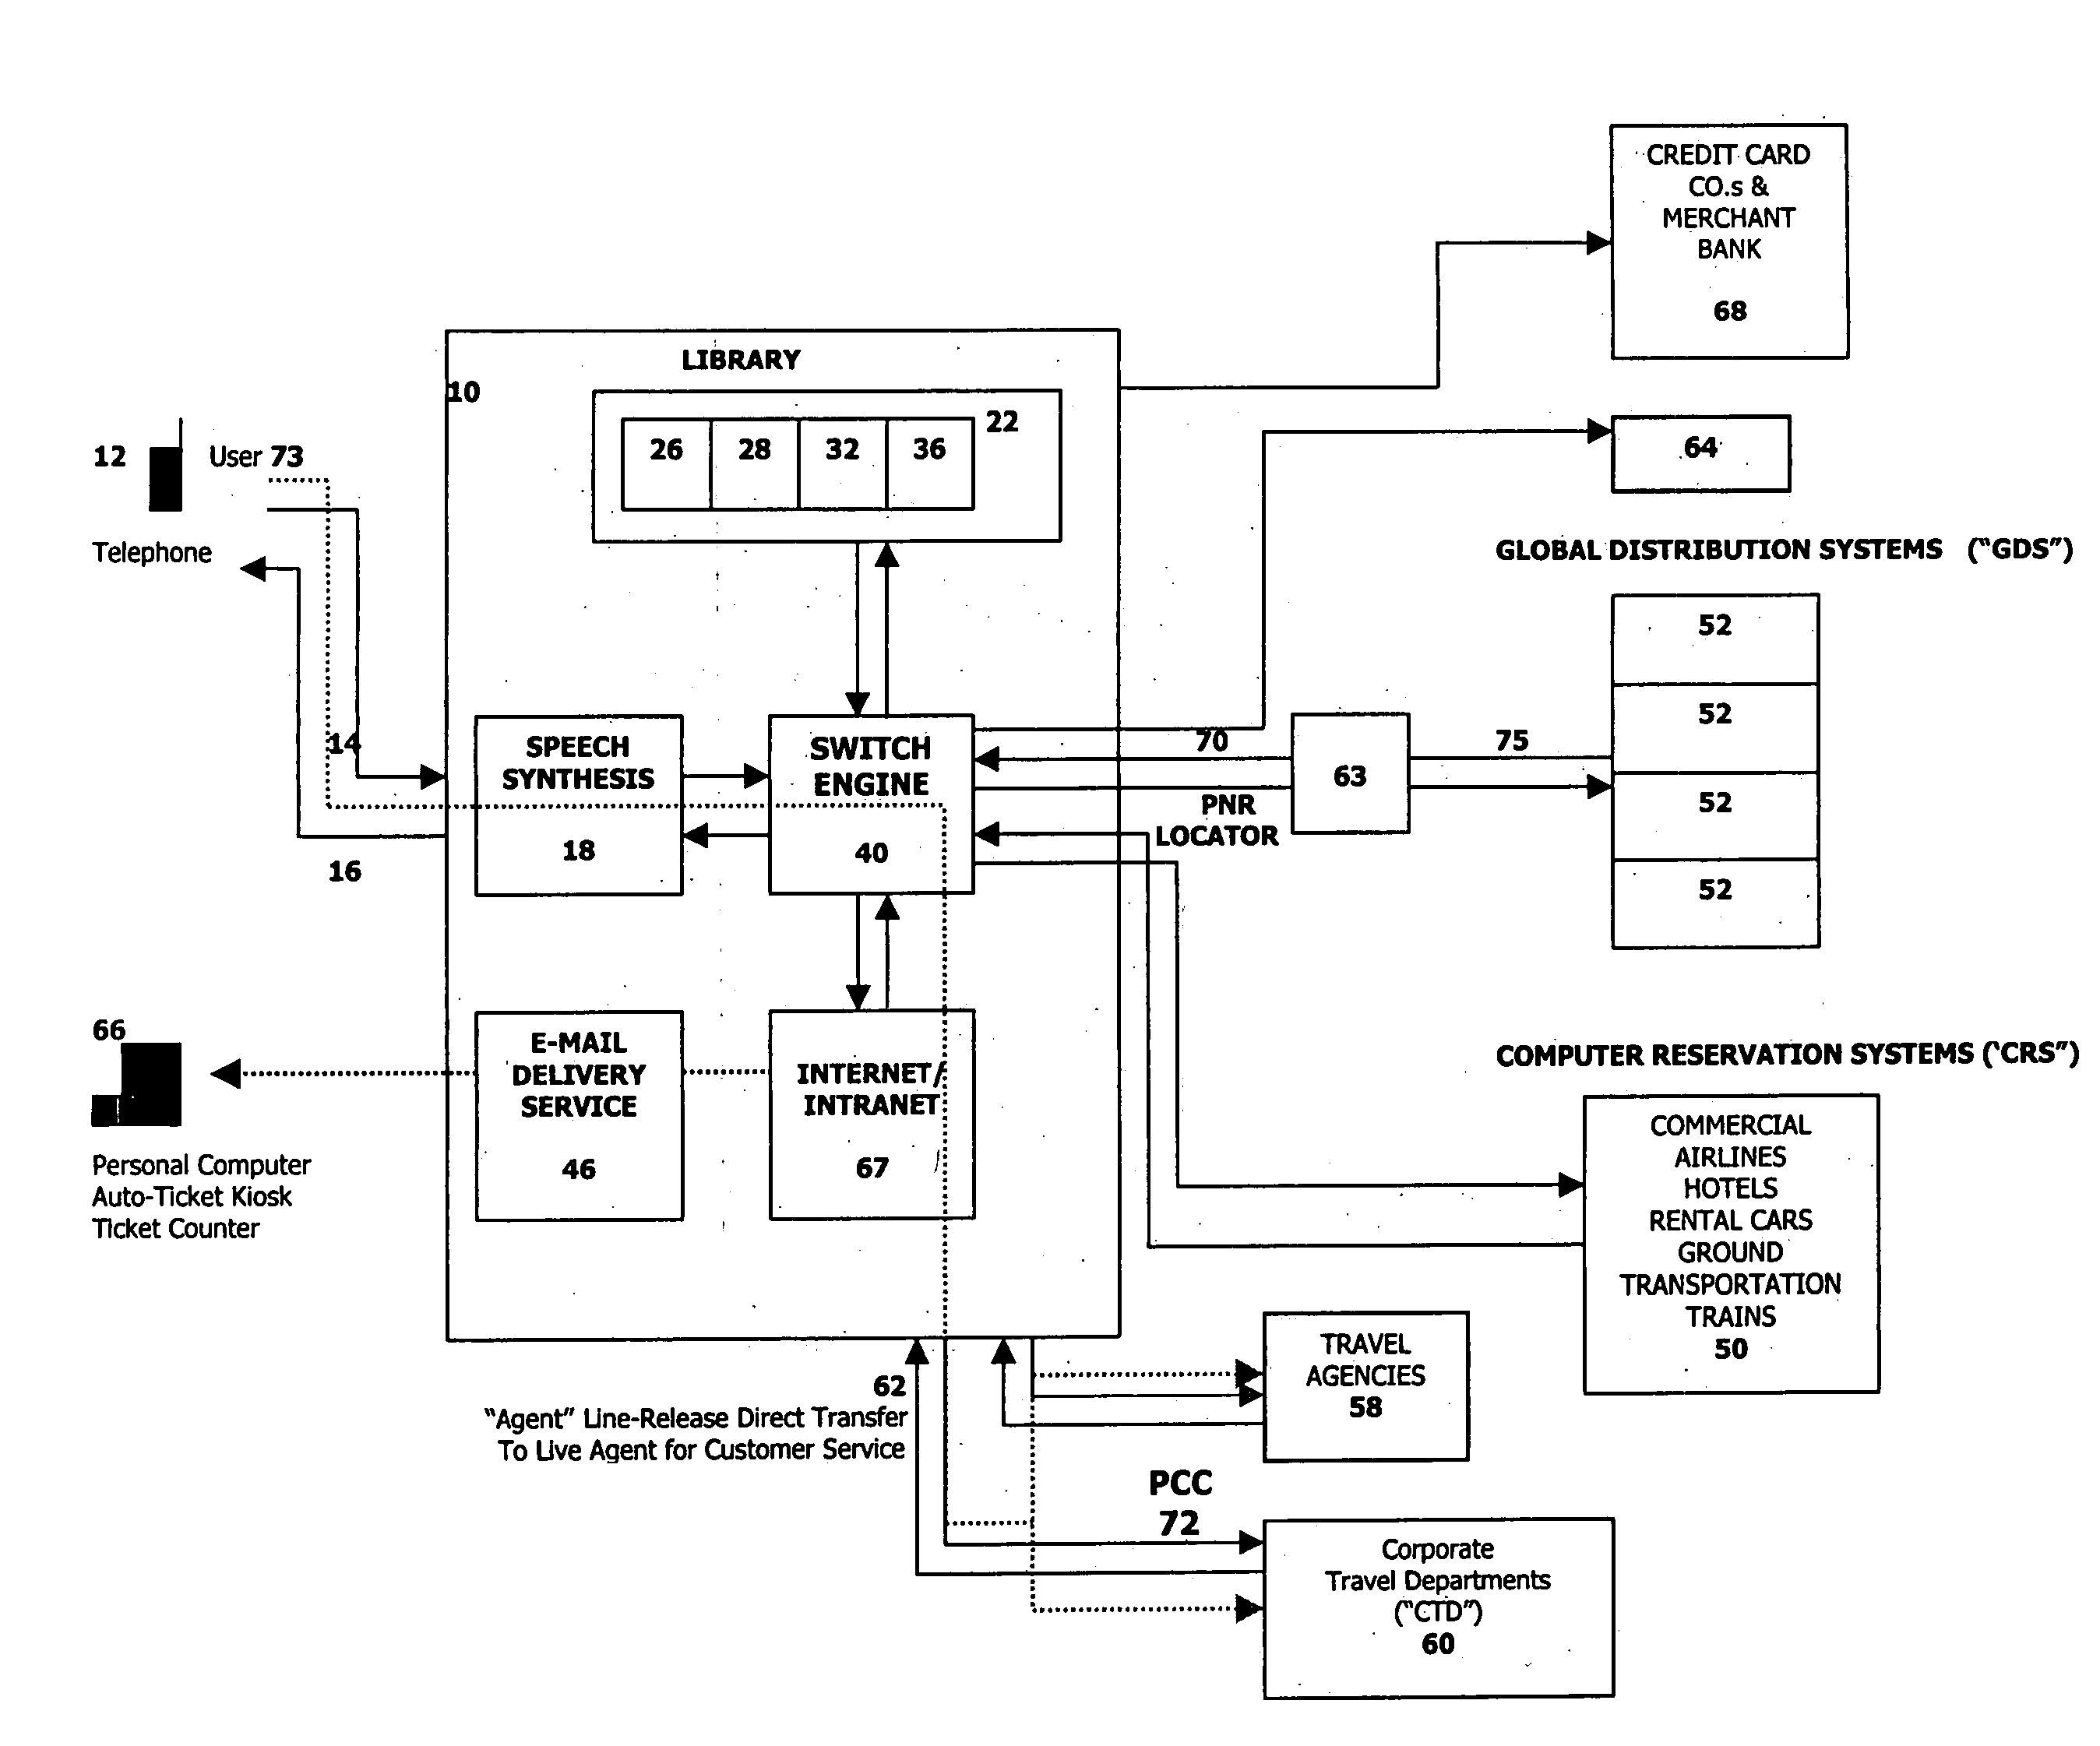 synthesis inventory system A method of singing voice synthesis uses commercially-available midi-based music composition software as a user interface (13) the user specifies a musical score and.